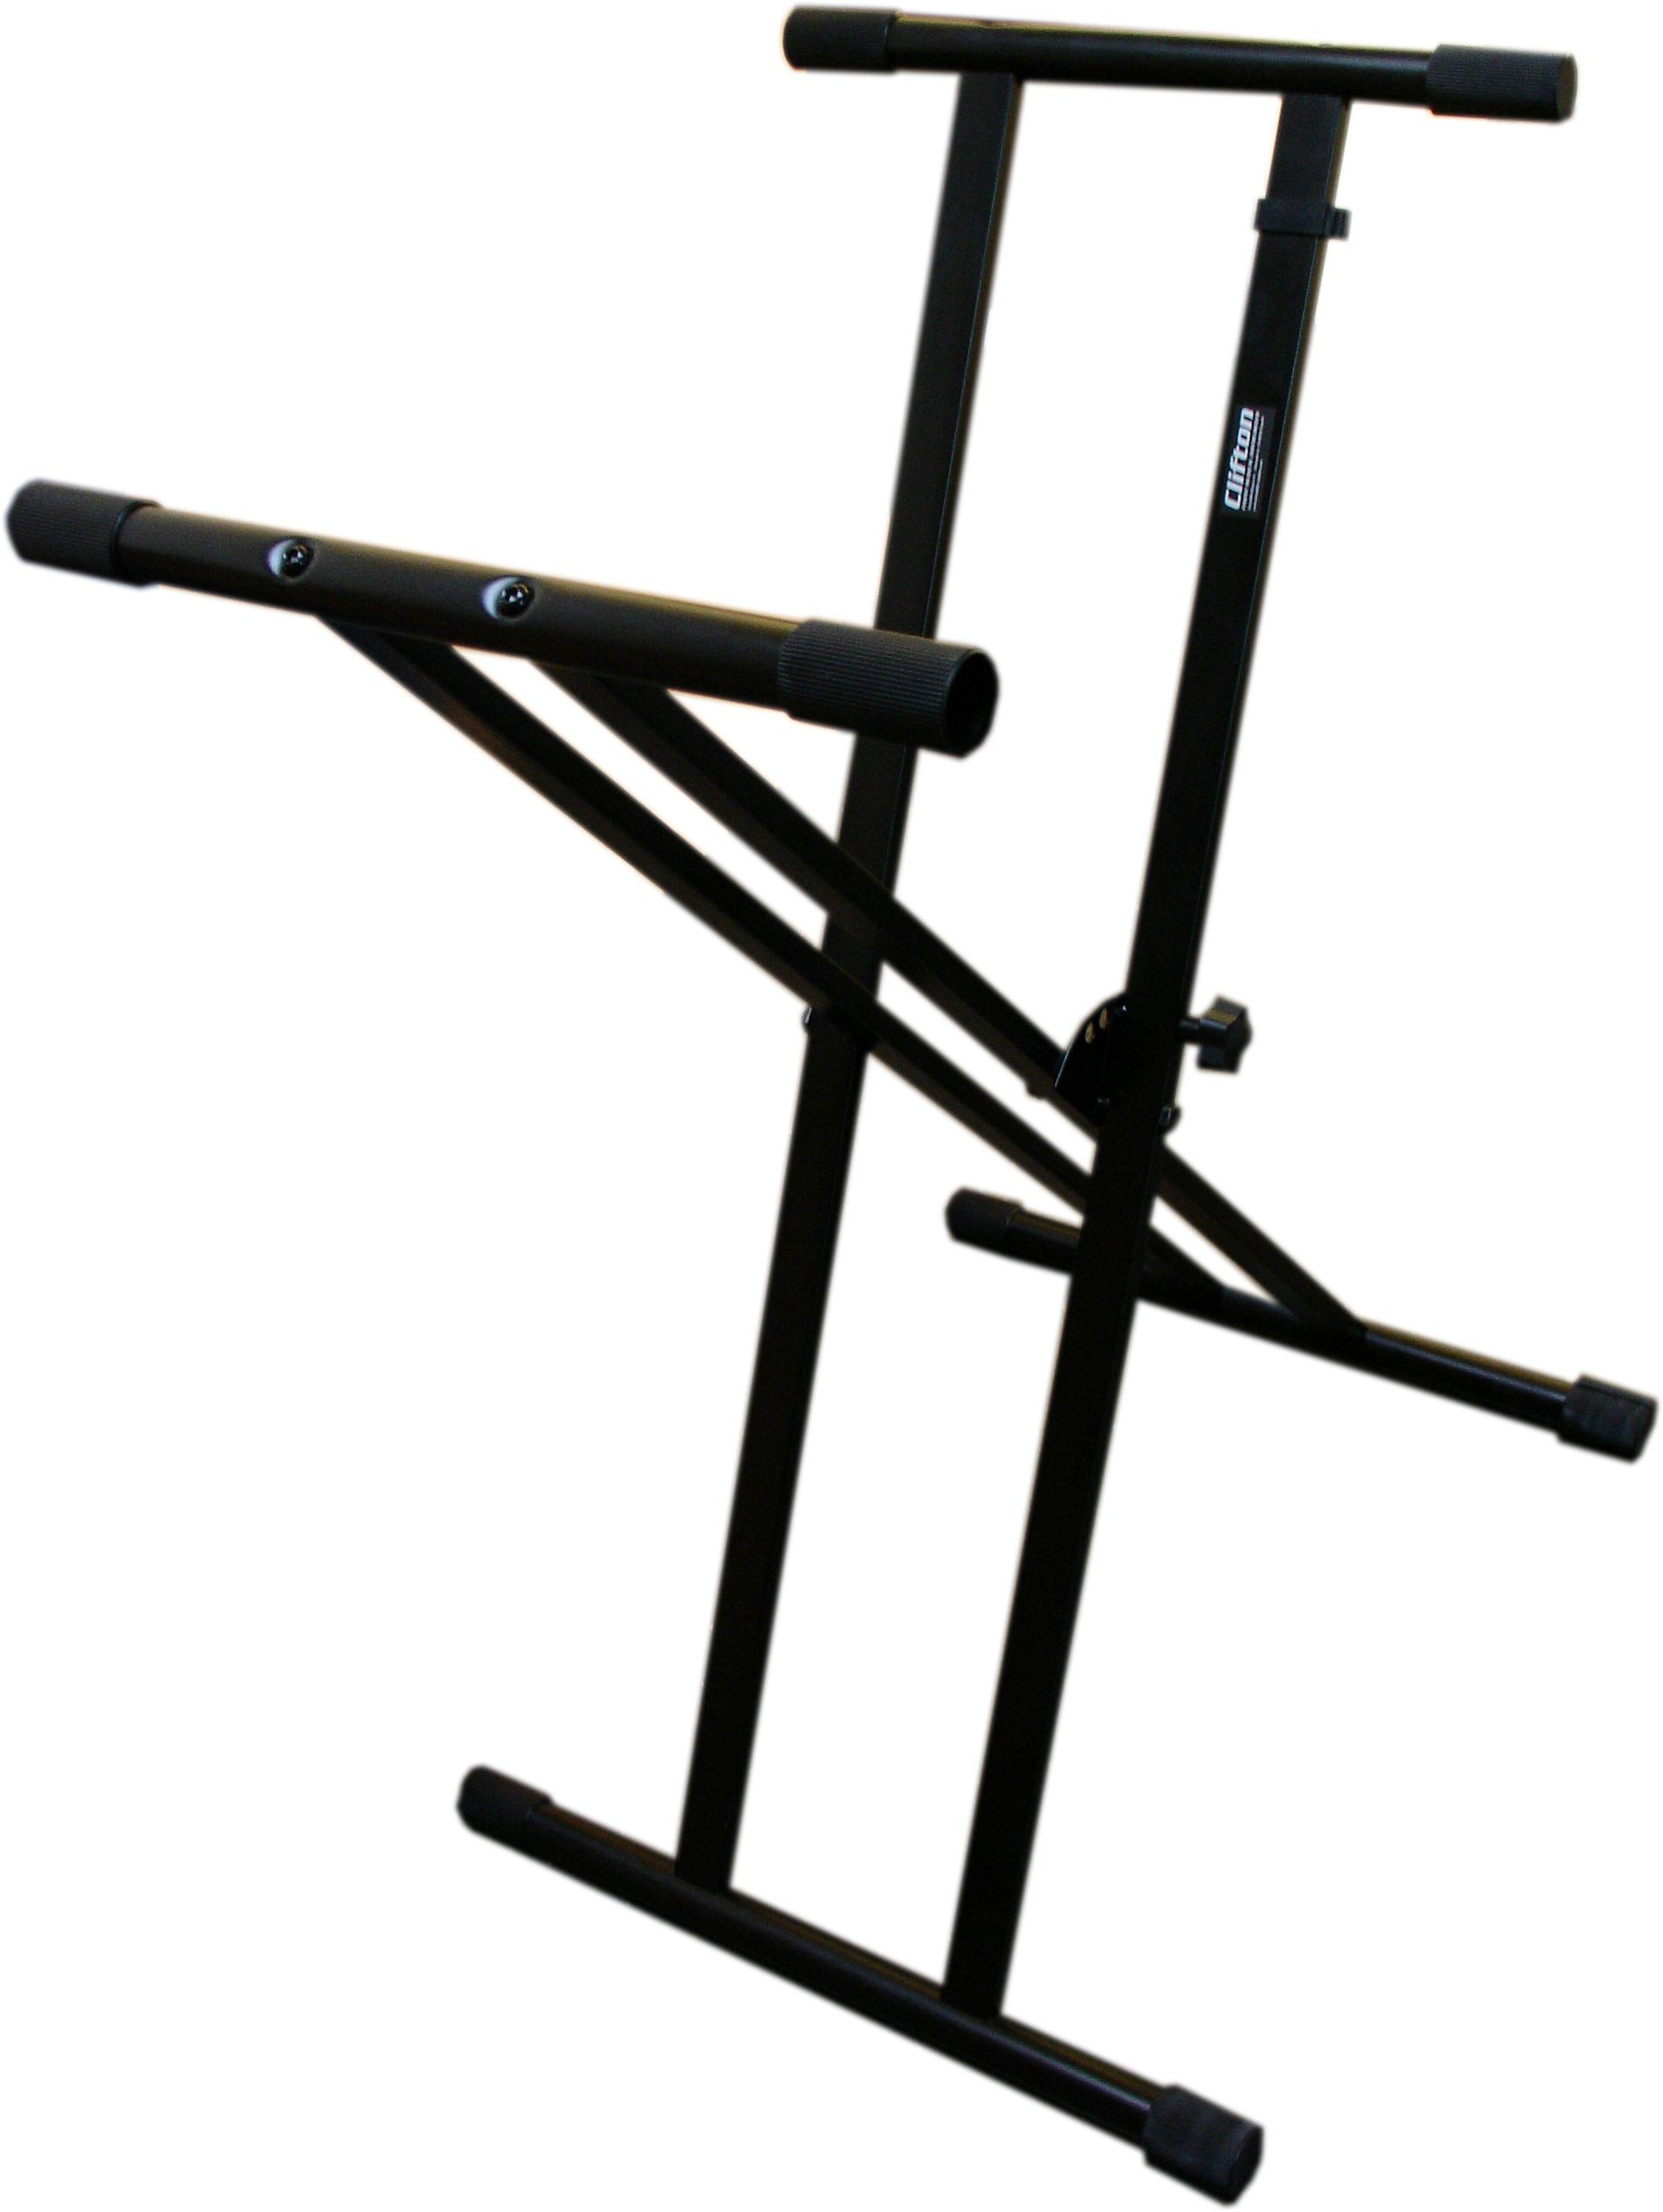 Clifton Keyboardständer, »Keyboardstand double cross«